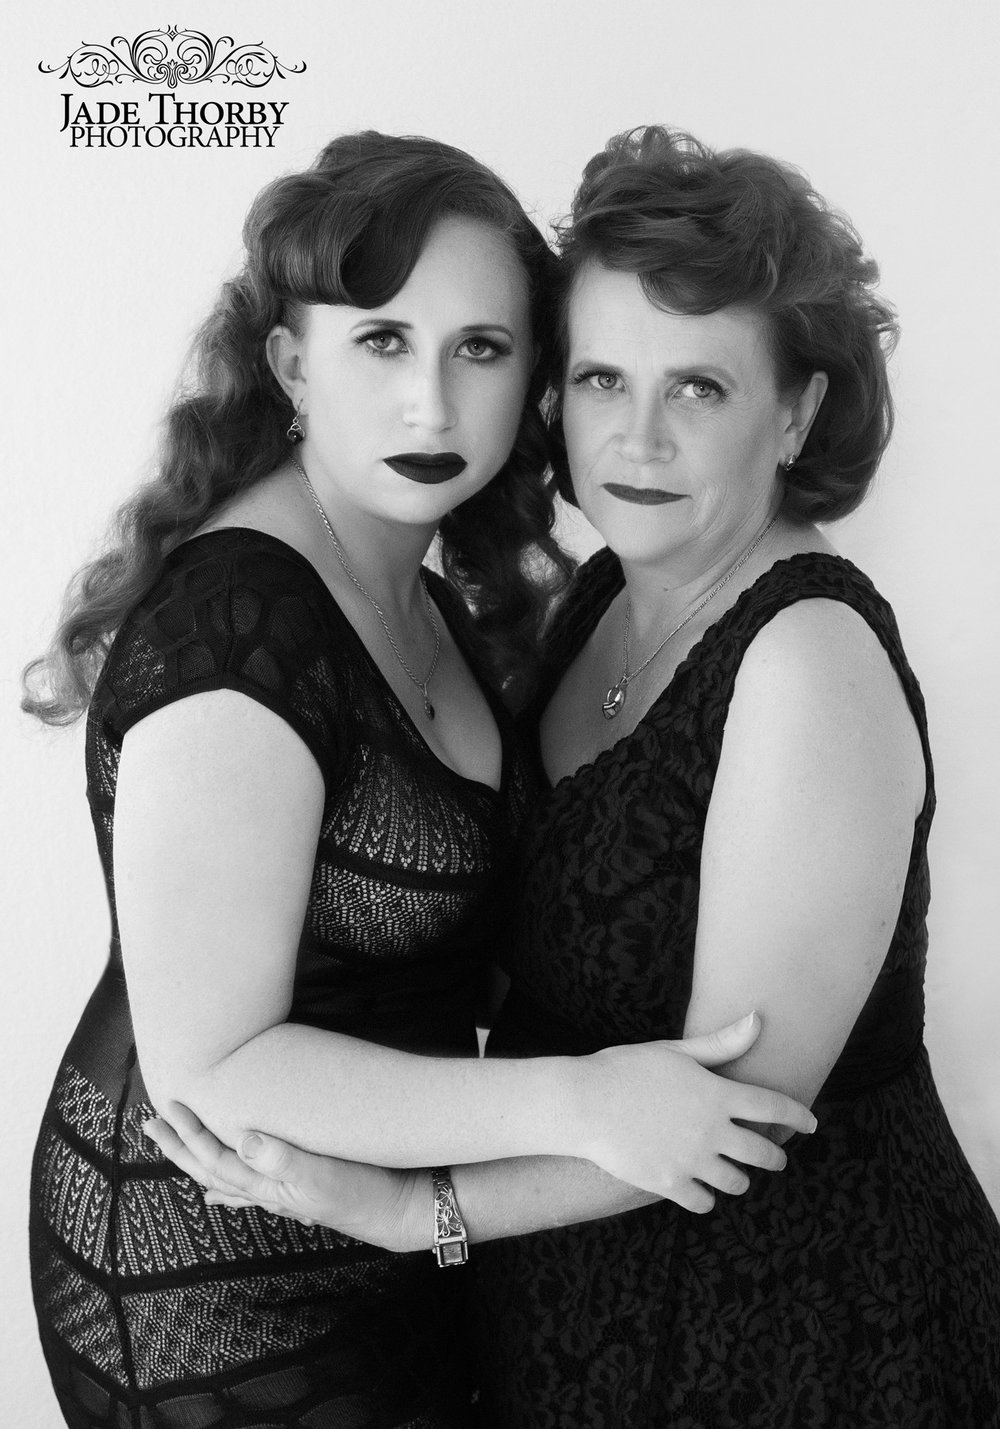 jadethorby-mother-daughter-shoot